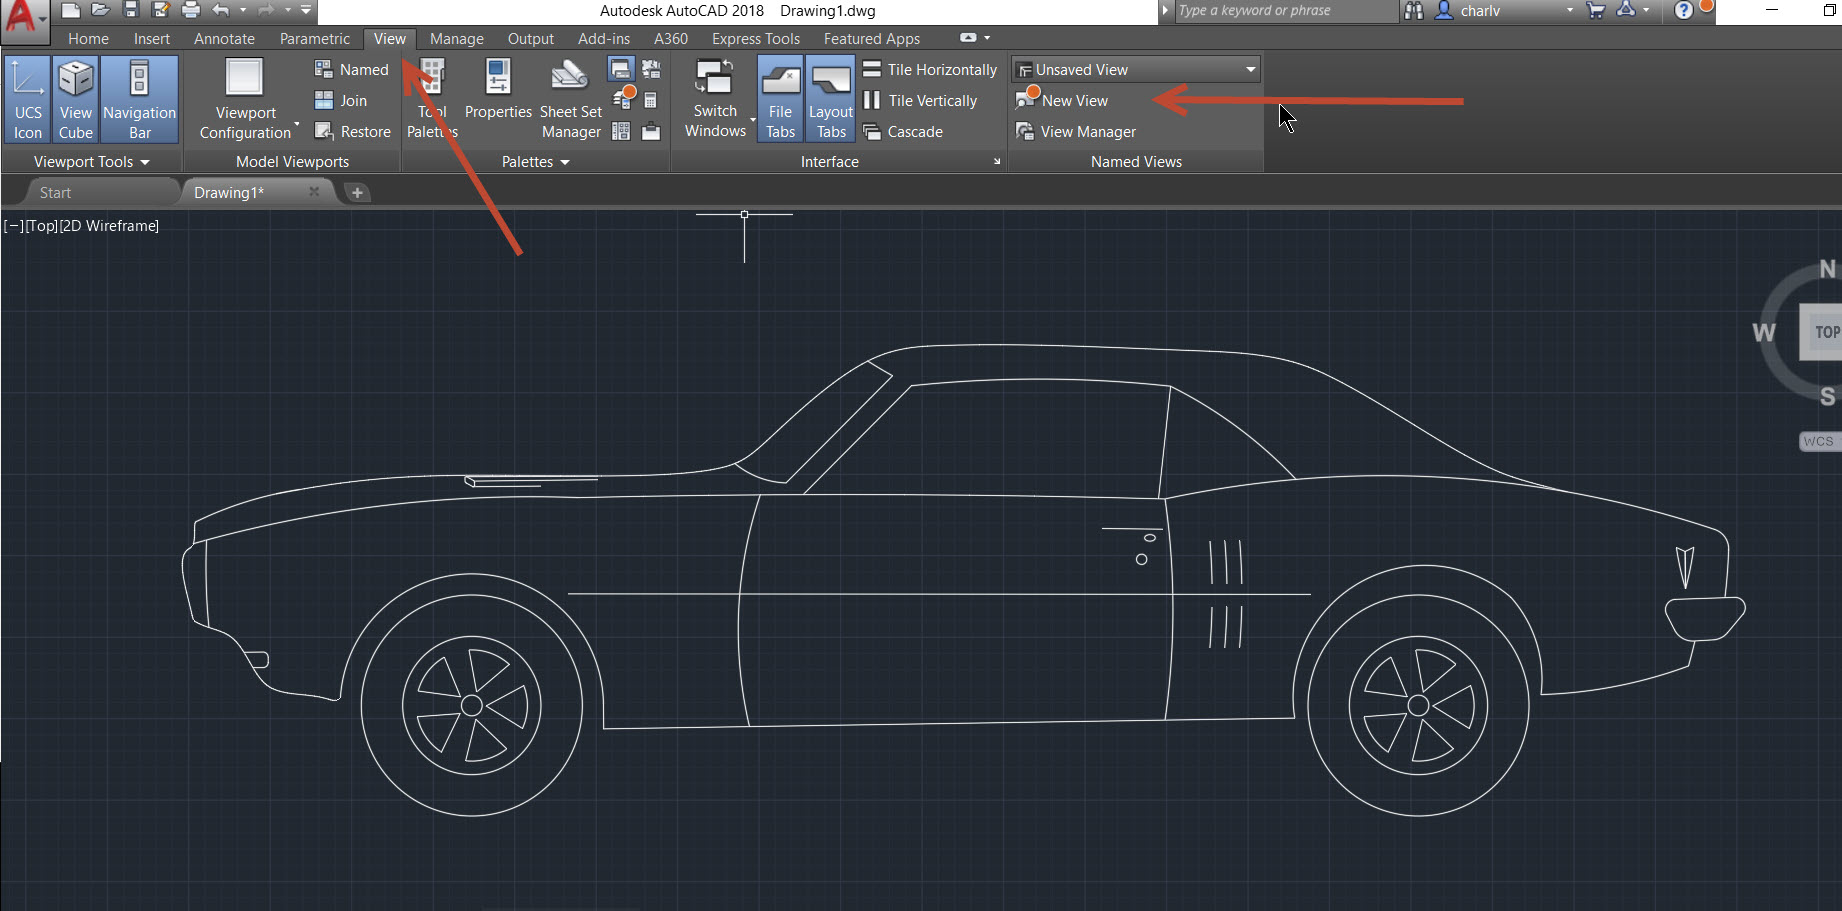 4a AutoCAD 2018.1 new feature – Named View and Viewport creation.